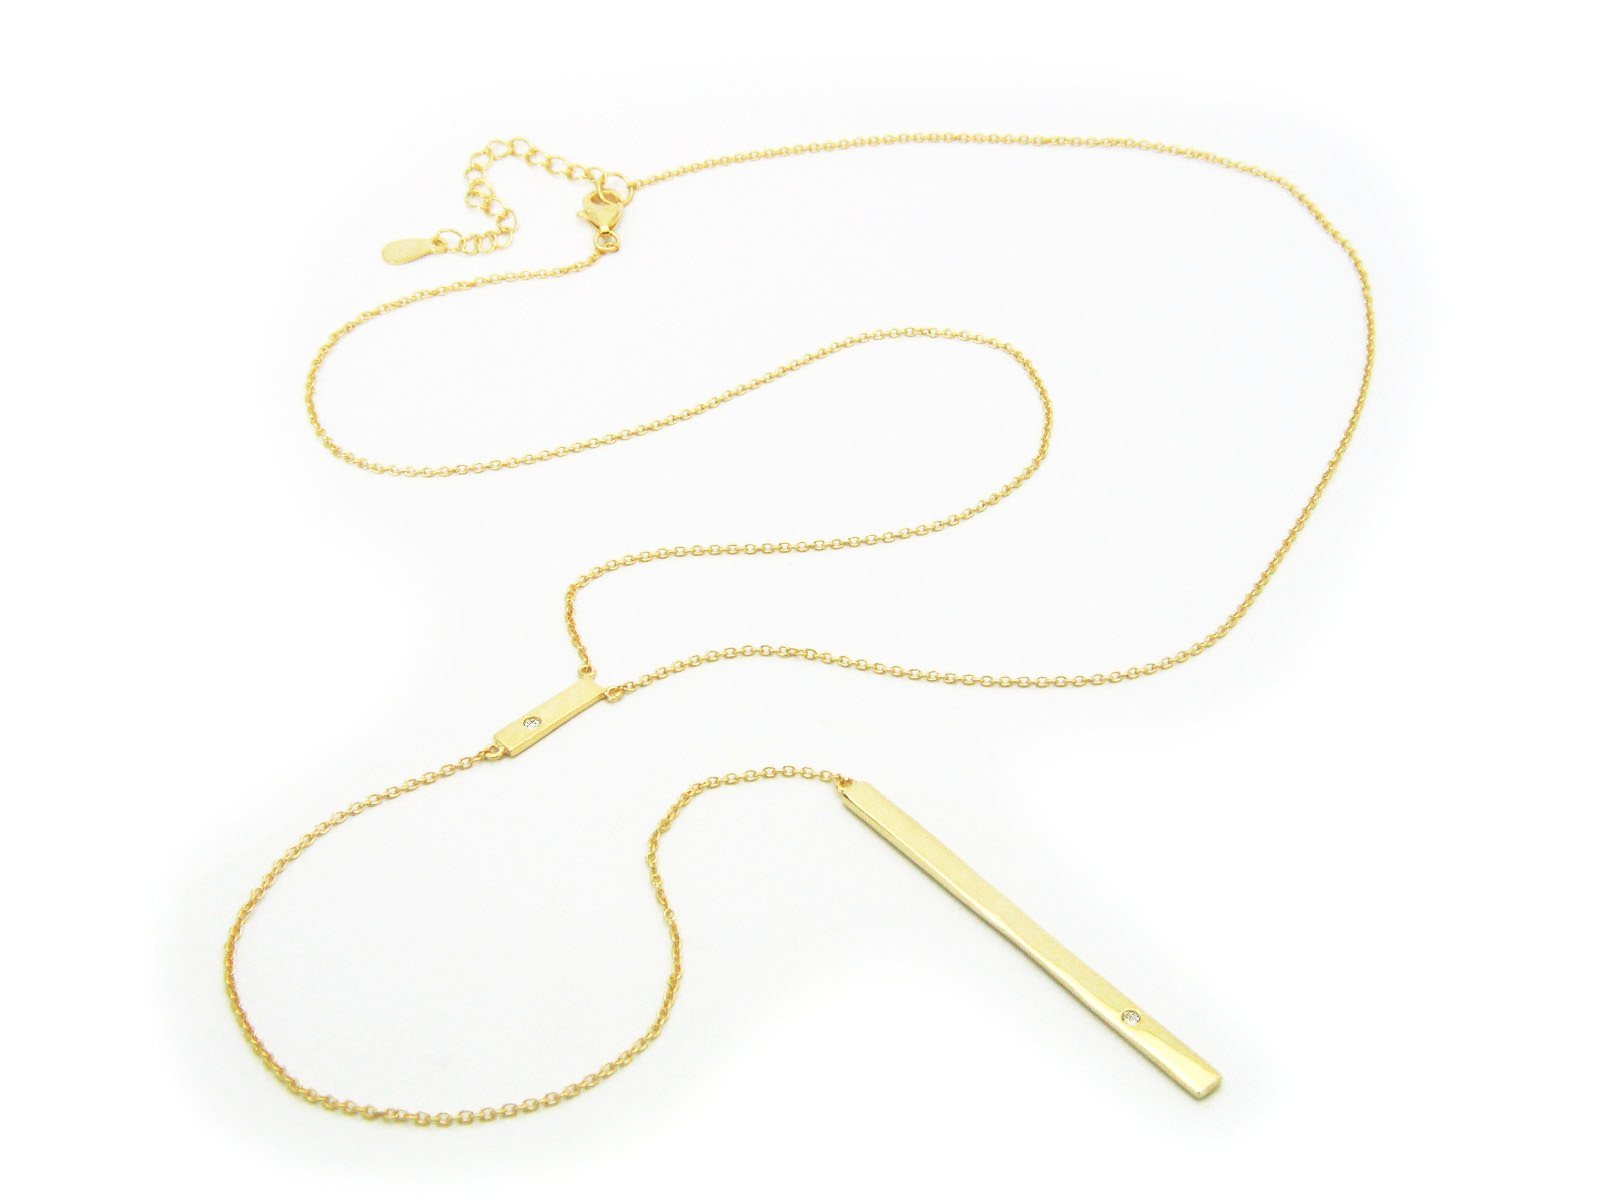 "18K Gold Plated Lariat Necklace Bar Pendant With 2 Sparkling Zirconia Stones 35"" Long Chain"